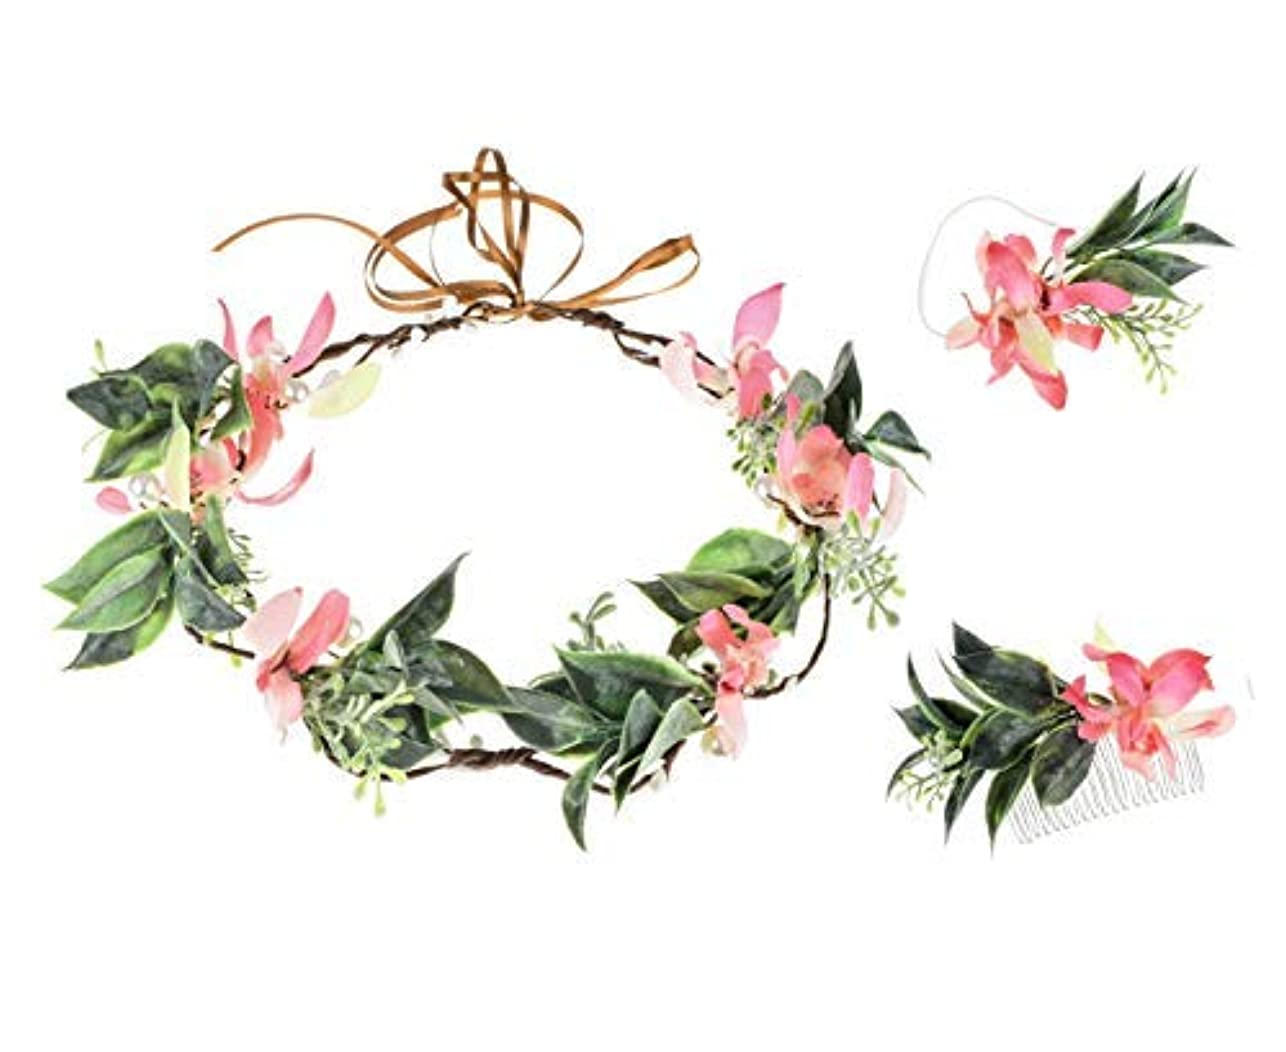 焦がす式印象的なFloral Fall Butterfly Orchid Flower Crown Hair Comb Green Leaf Wreath Bridal Wrist Flower Maternity Photo Props NS01 [並行輸入品]